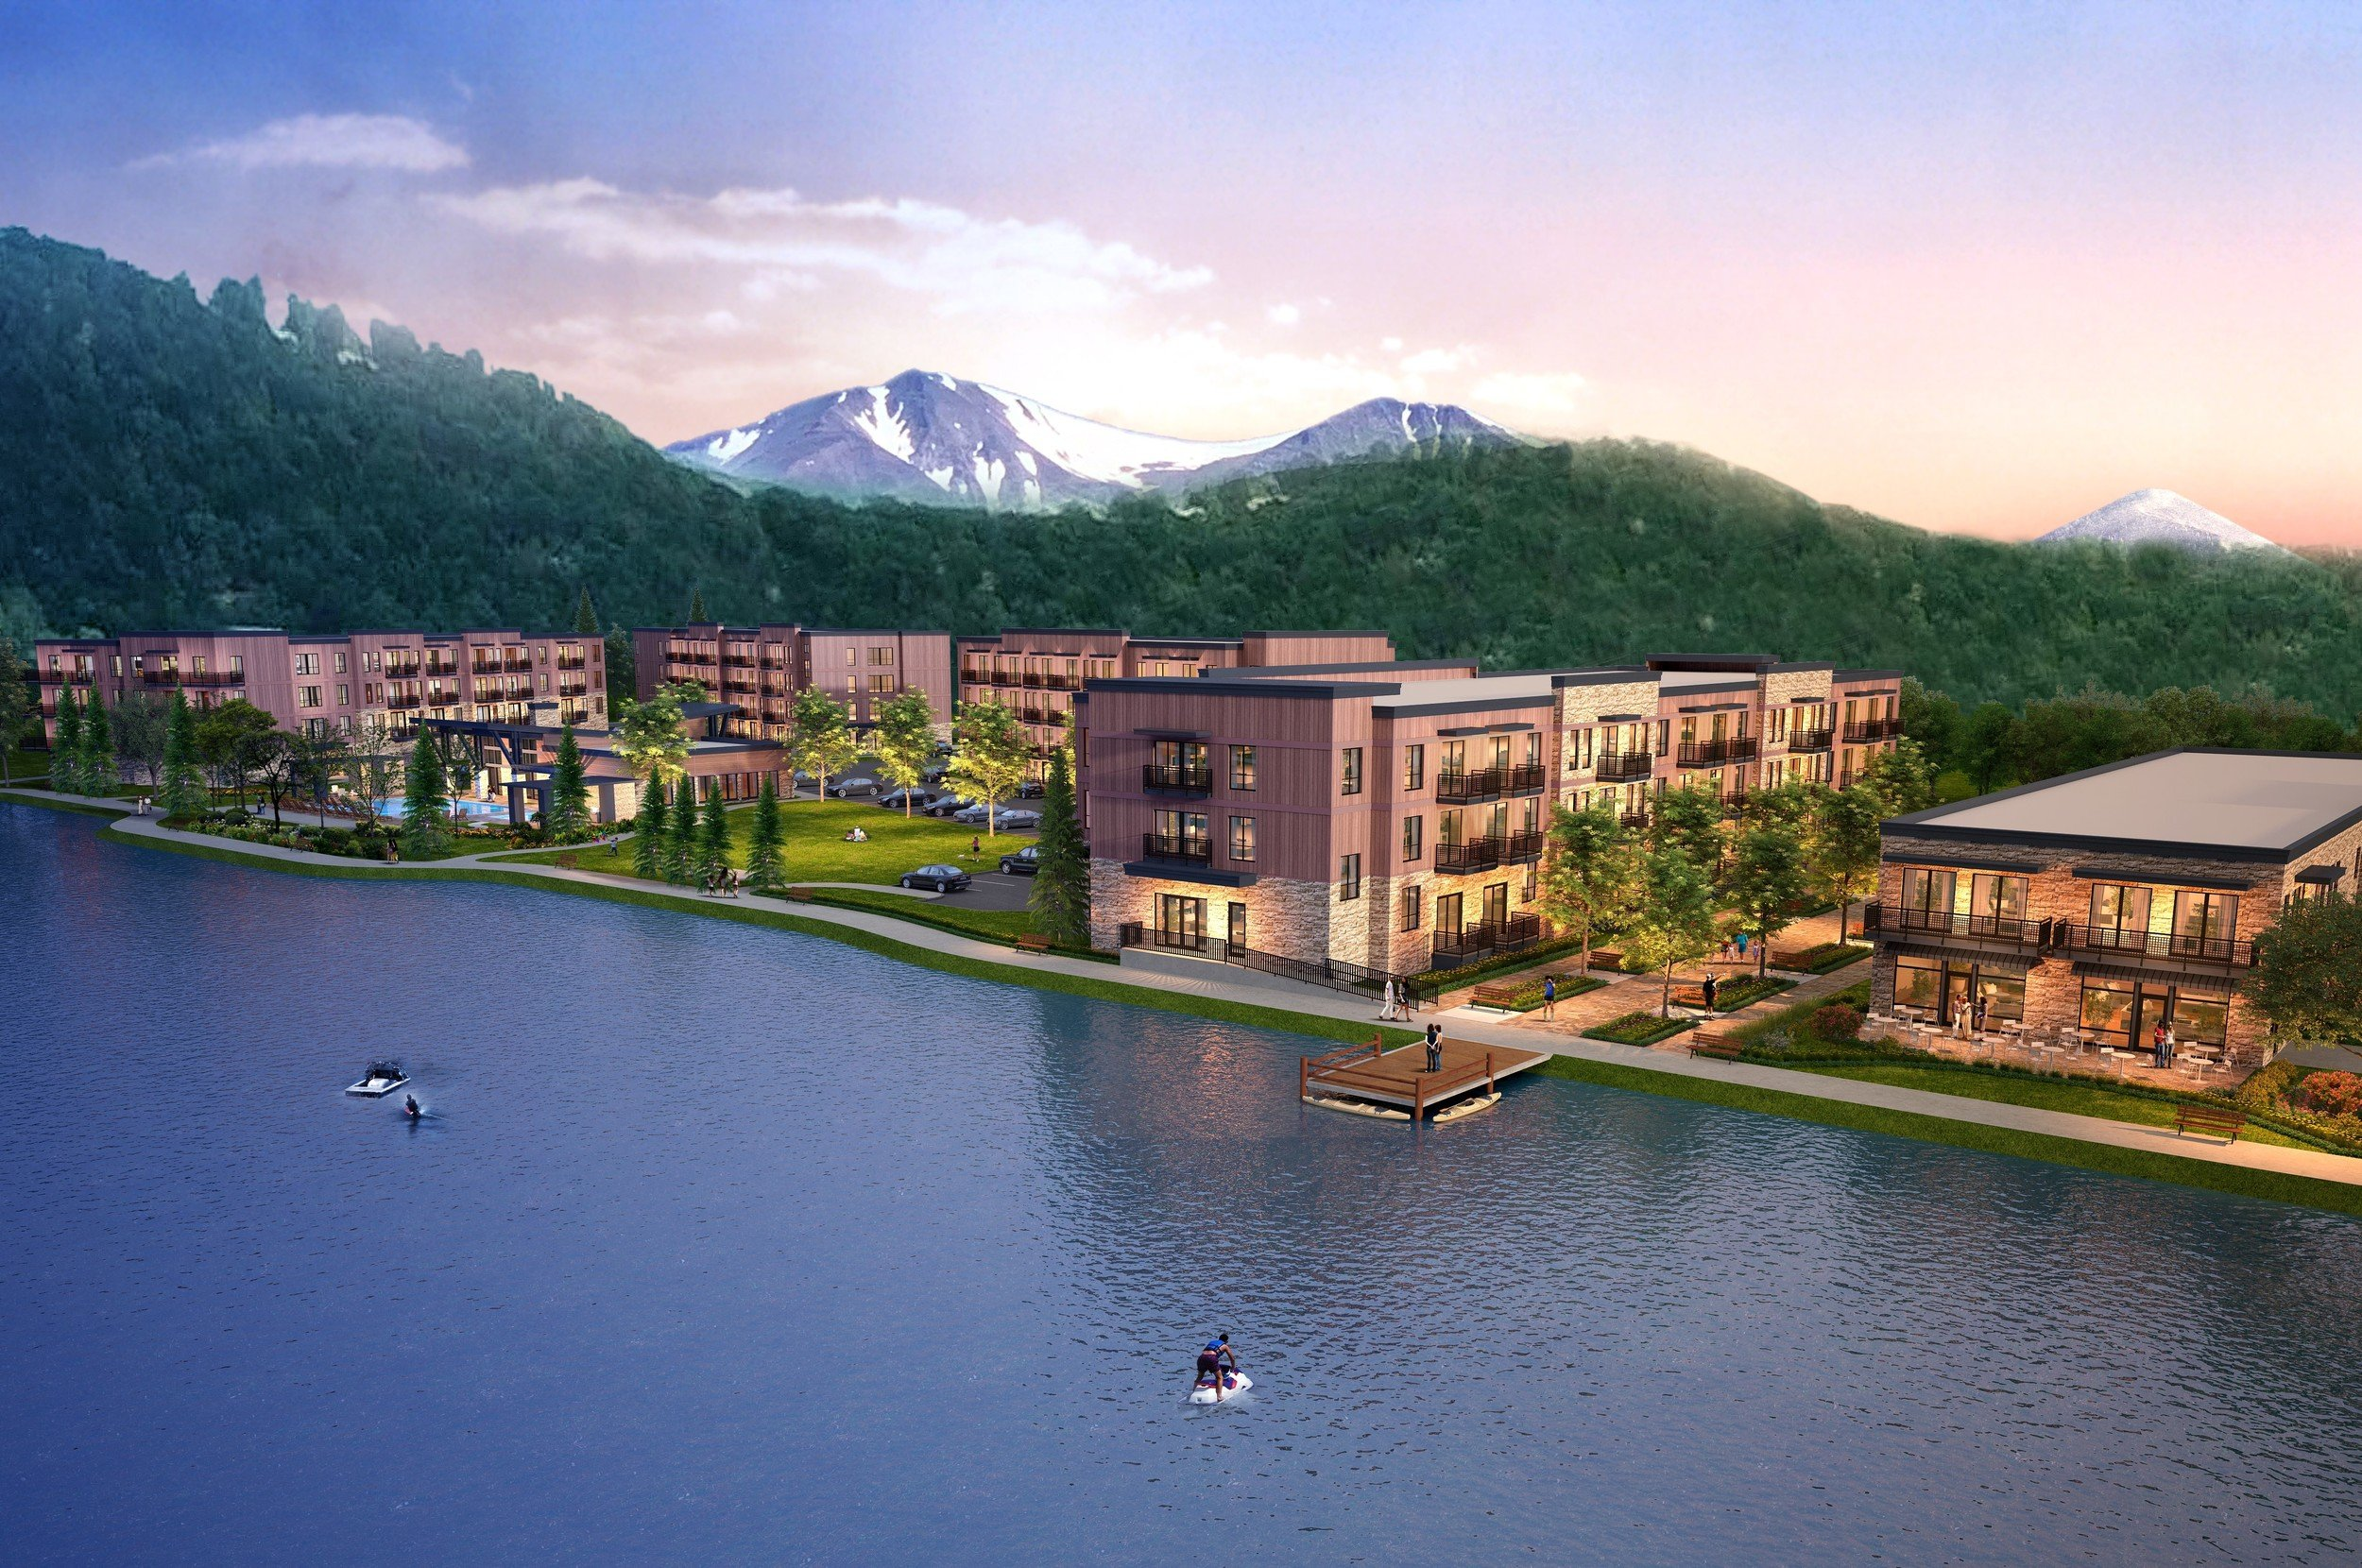 Dallas partnership breaks ground on 196 apartments at the Tree Farm project in El Jebel thumbnail